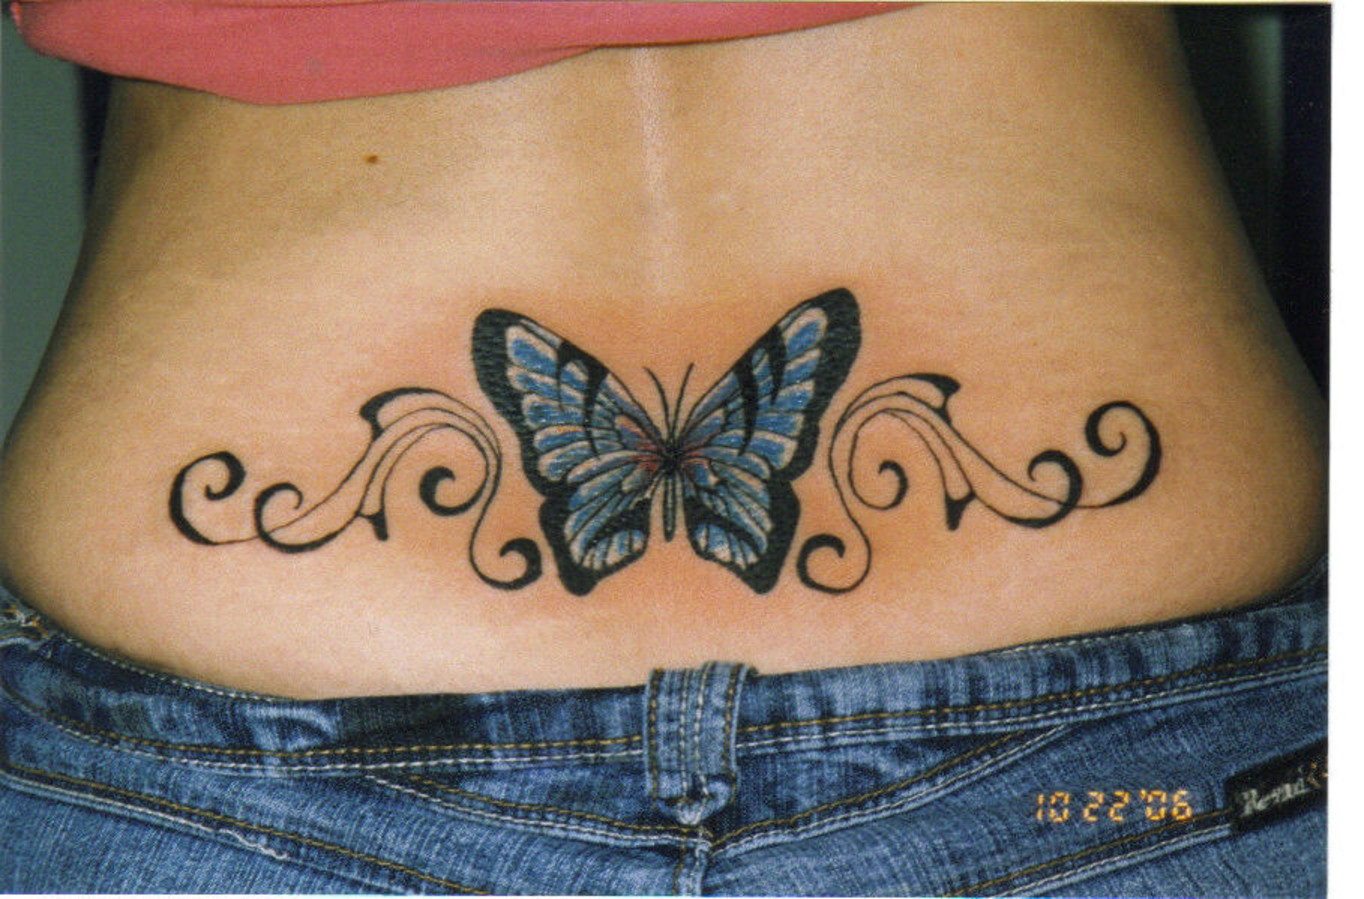 tattooz designs butterfly back tattoos designs butterfly back tattoos idea. Black Bedroom Furniture Sets. Home Design Ideas